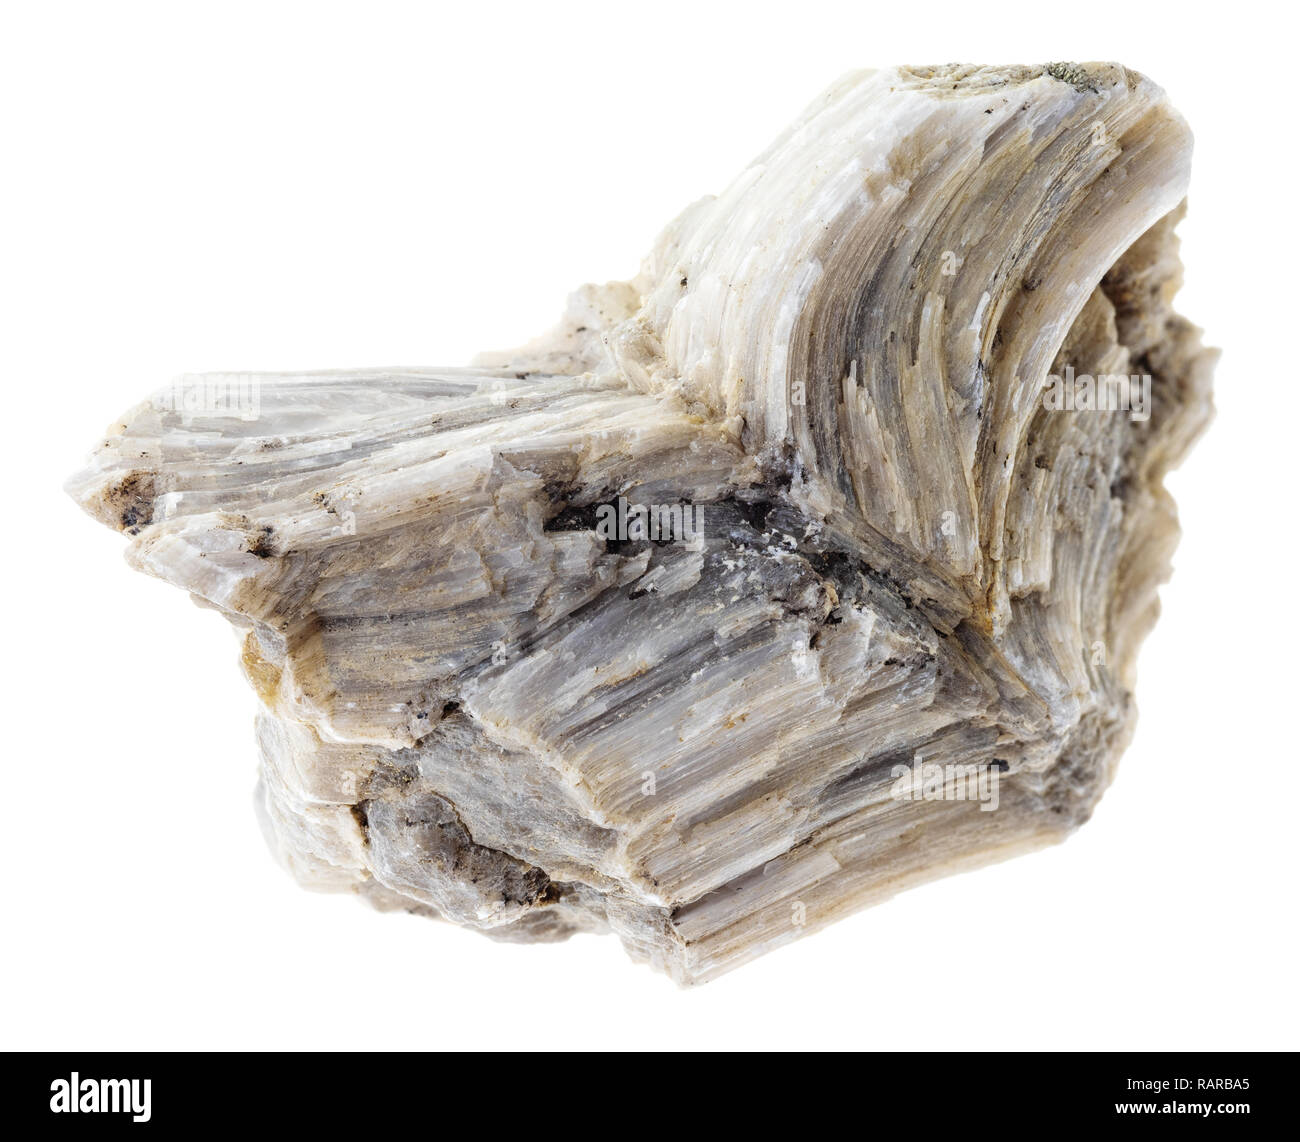 macro photography of natural mineral from geological collection - raw barite (baryte) stone on white background - Stock Image